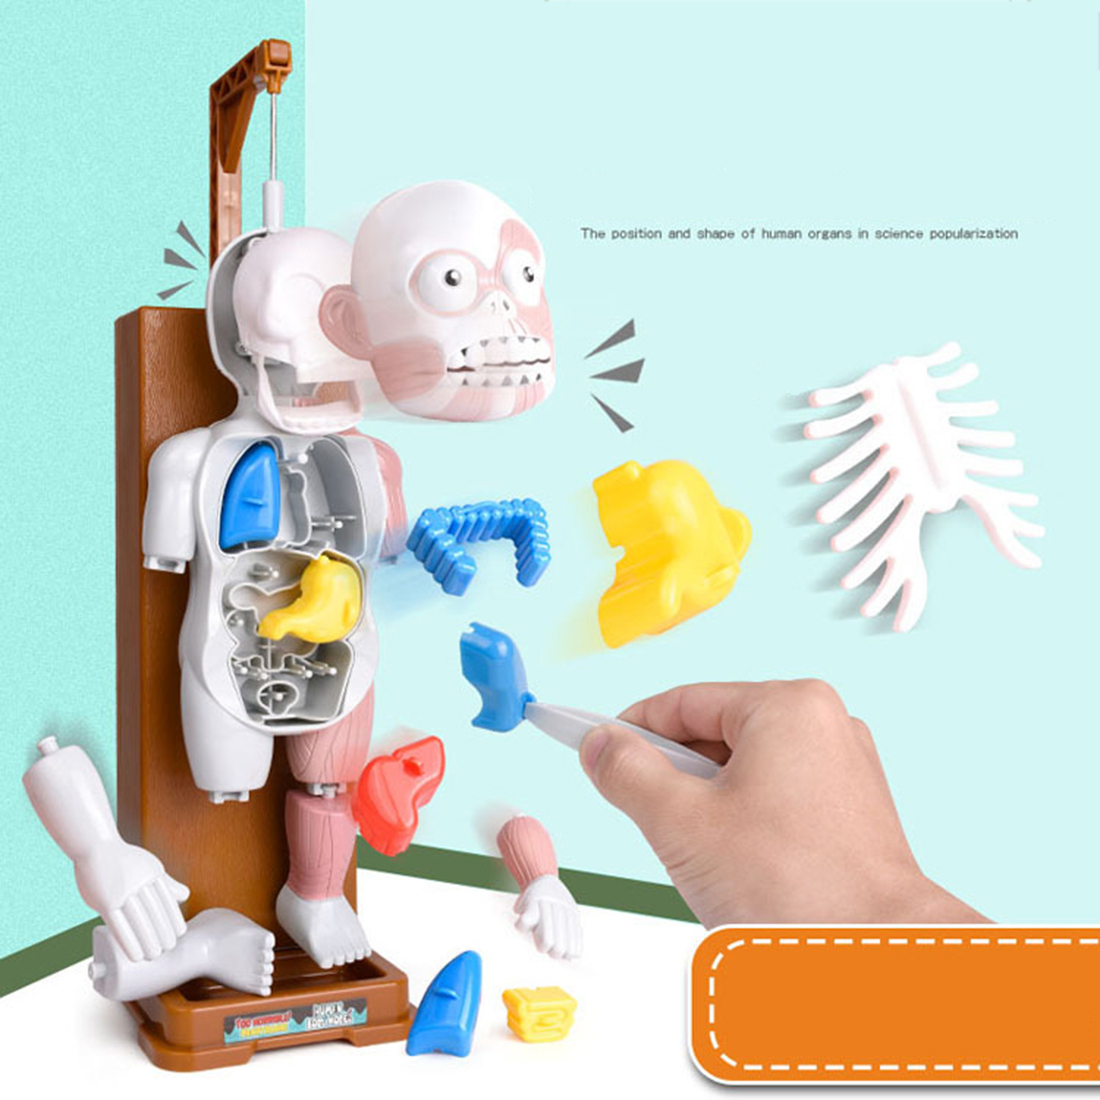 Scary Human Body Model Trick Joke Game Creepy 3D Puzzle Novelties Toys Gift Model Assembled Toy April Fools Day Toy